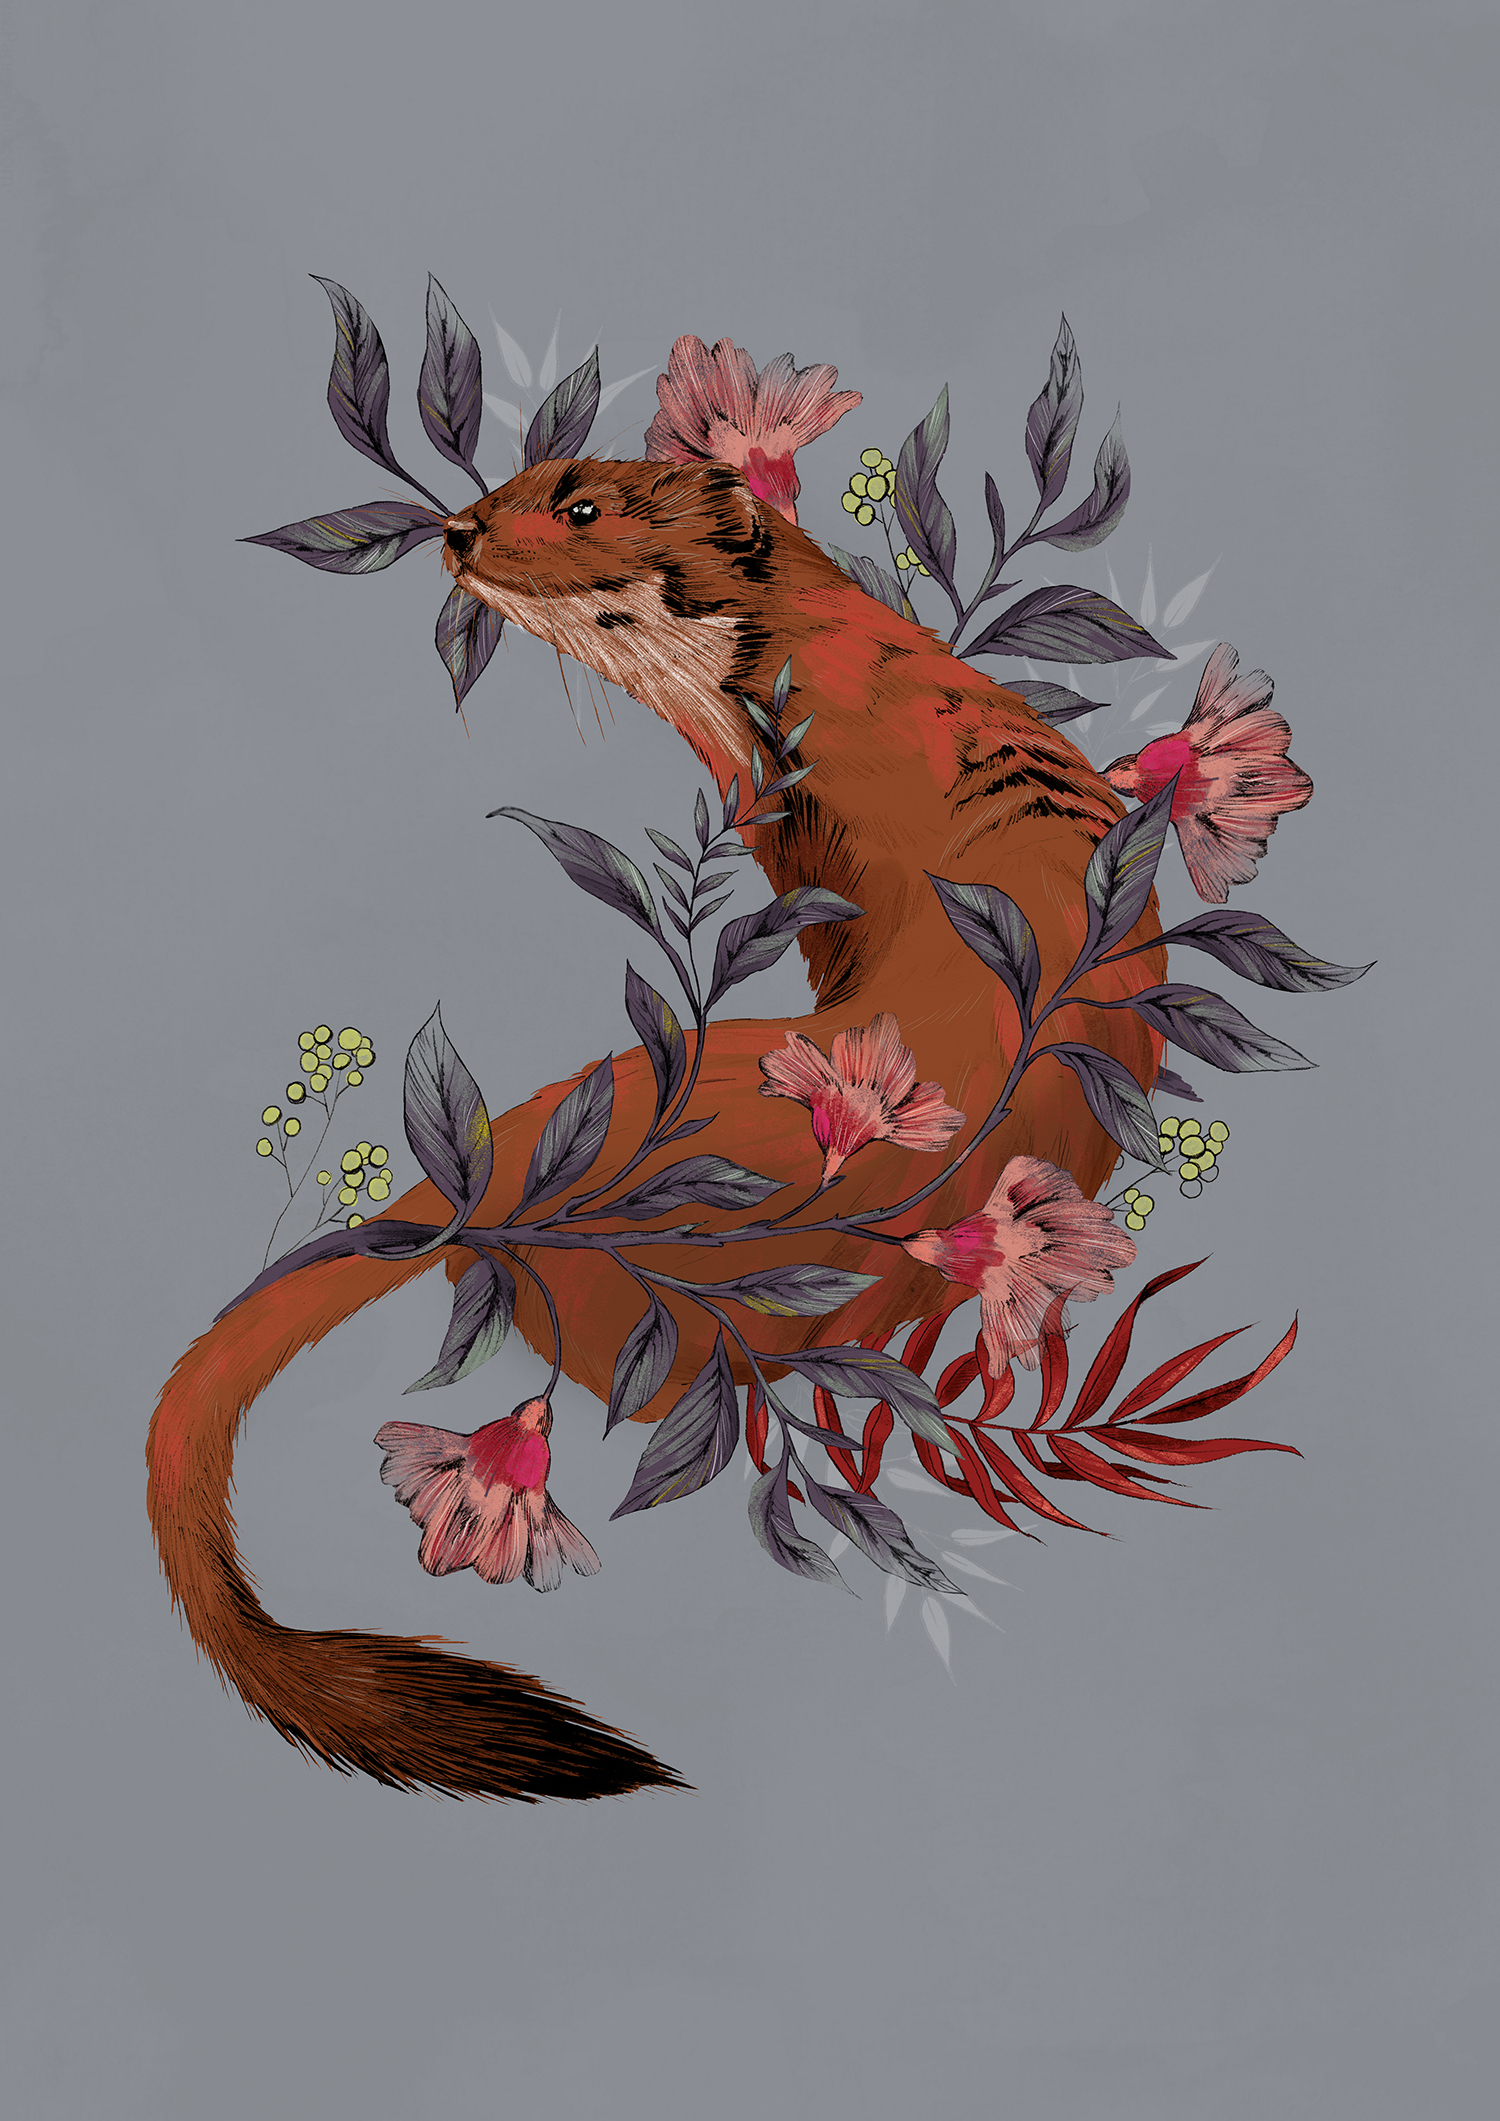 fig. 1. Stoat in foliage, folk art inspired